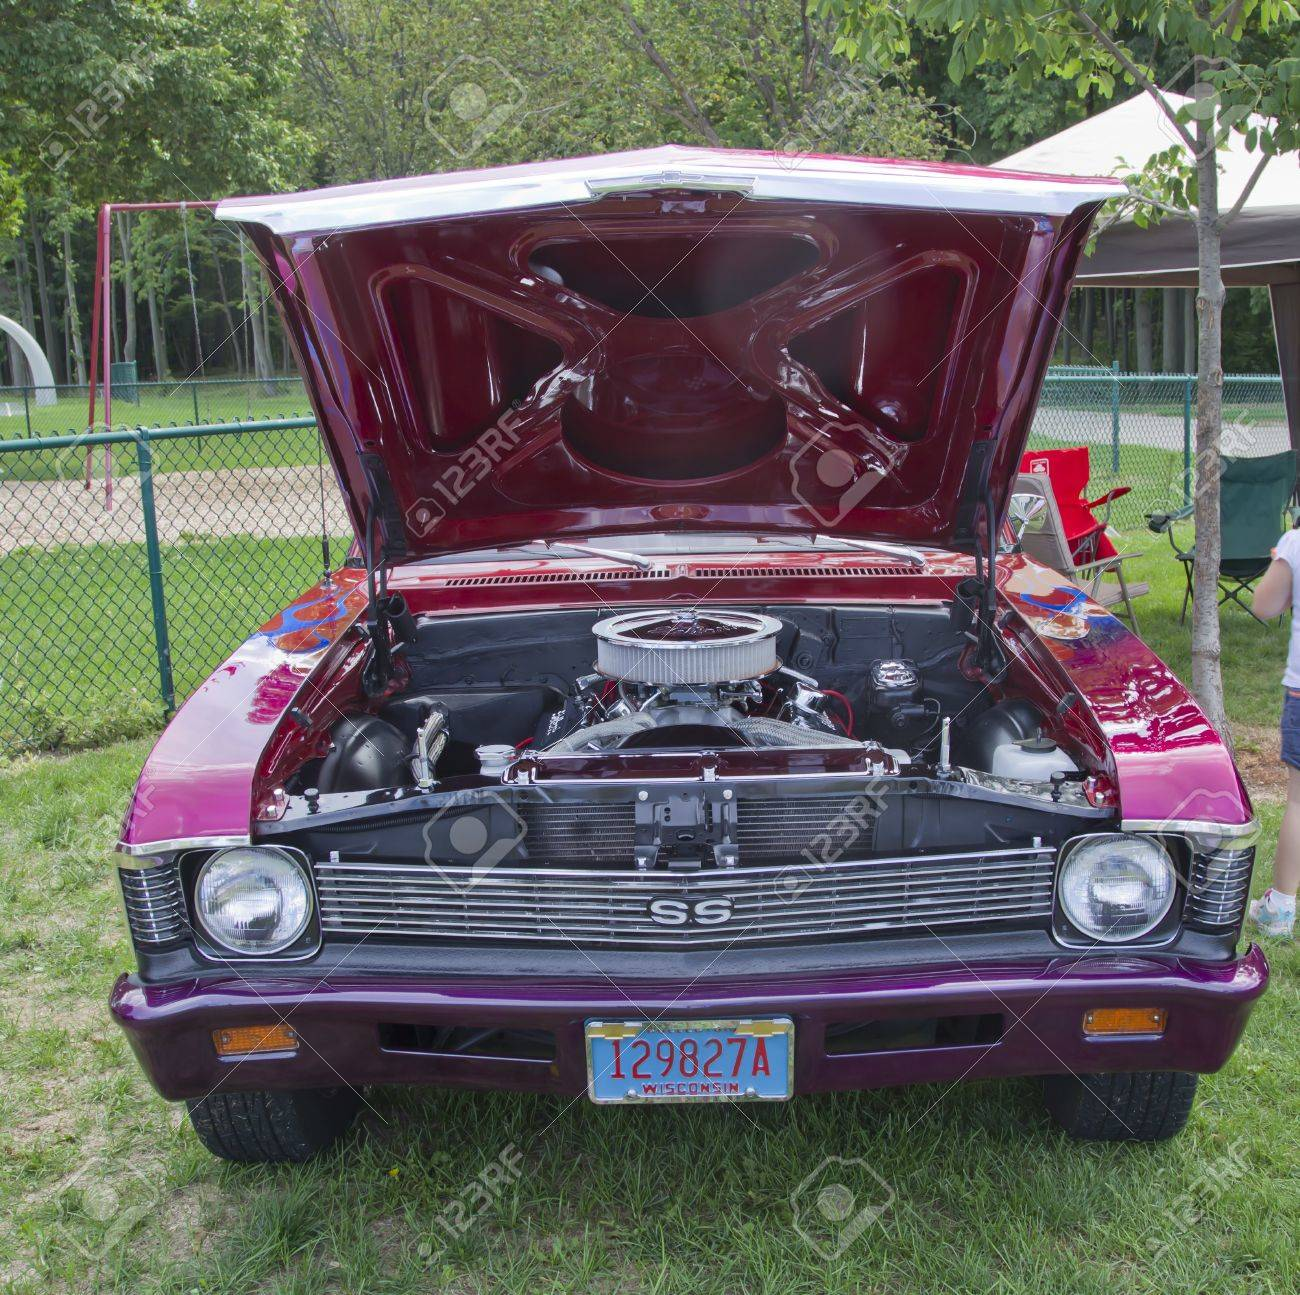 Combined Locks Wi August 18 Front View Of A Purple 1969 Chevy